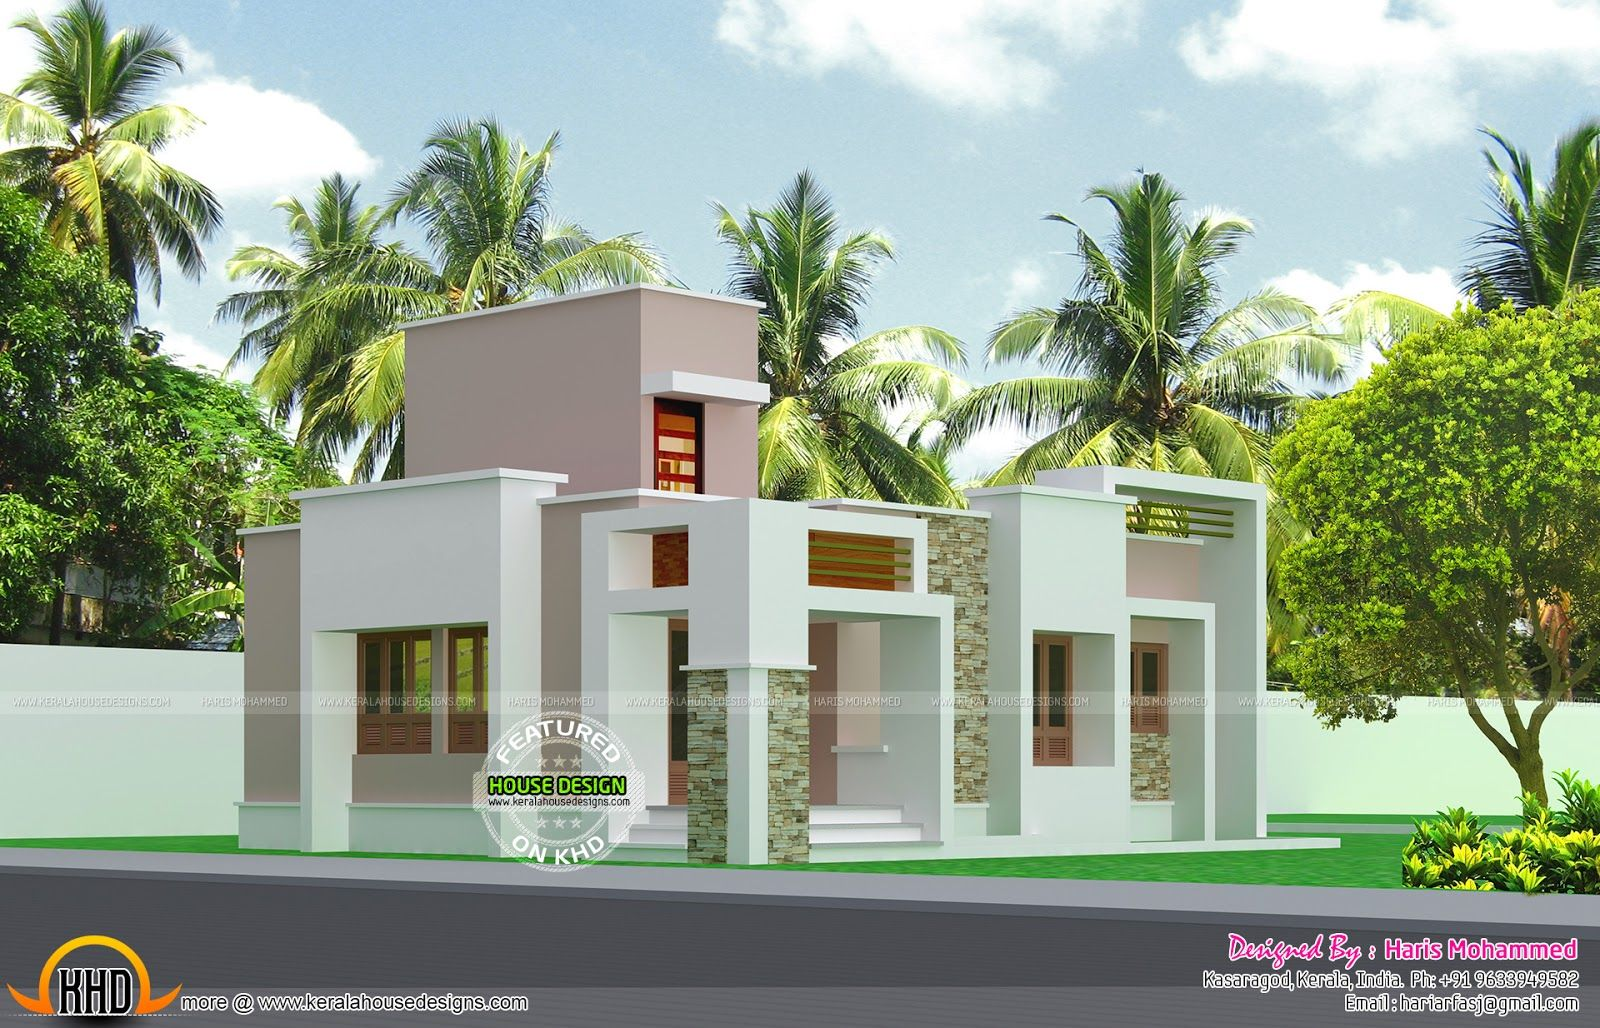 Box type low budget home kerala design and floor plans october also ymn rh pinterest